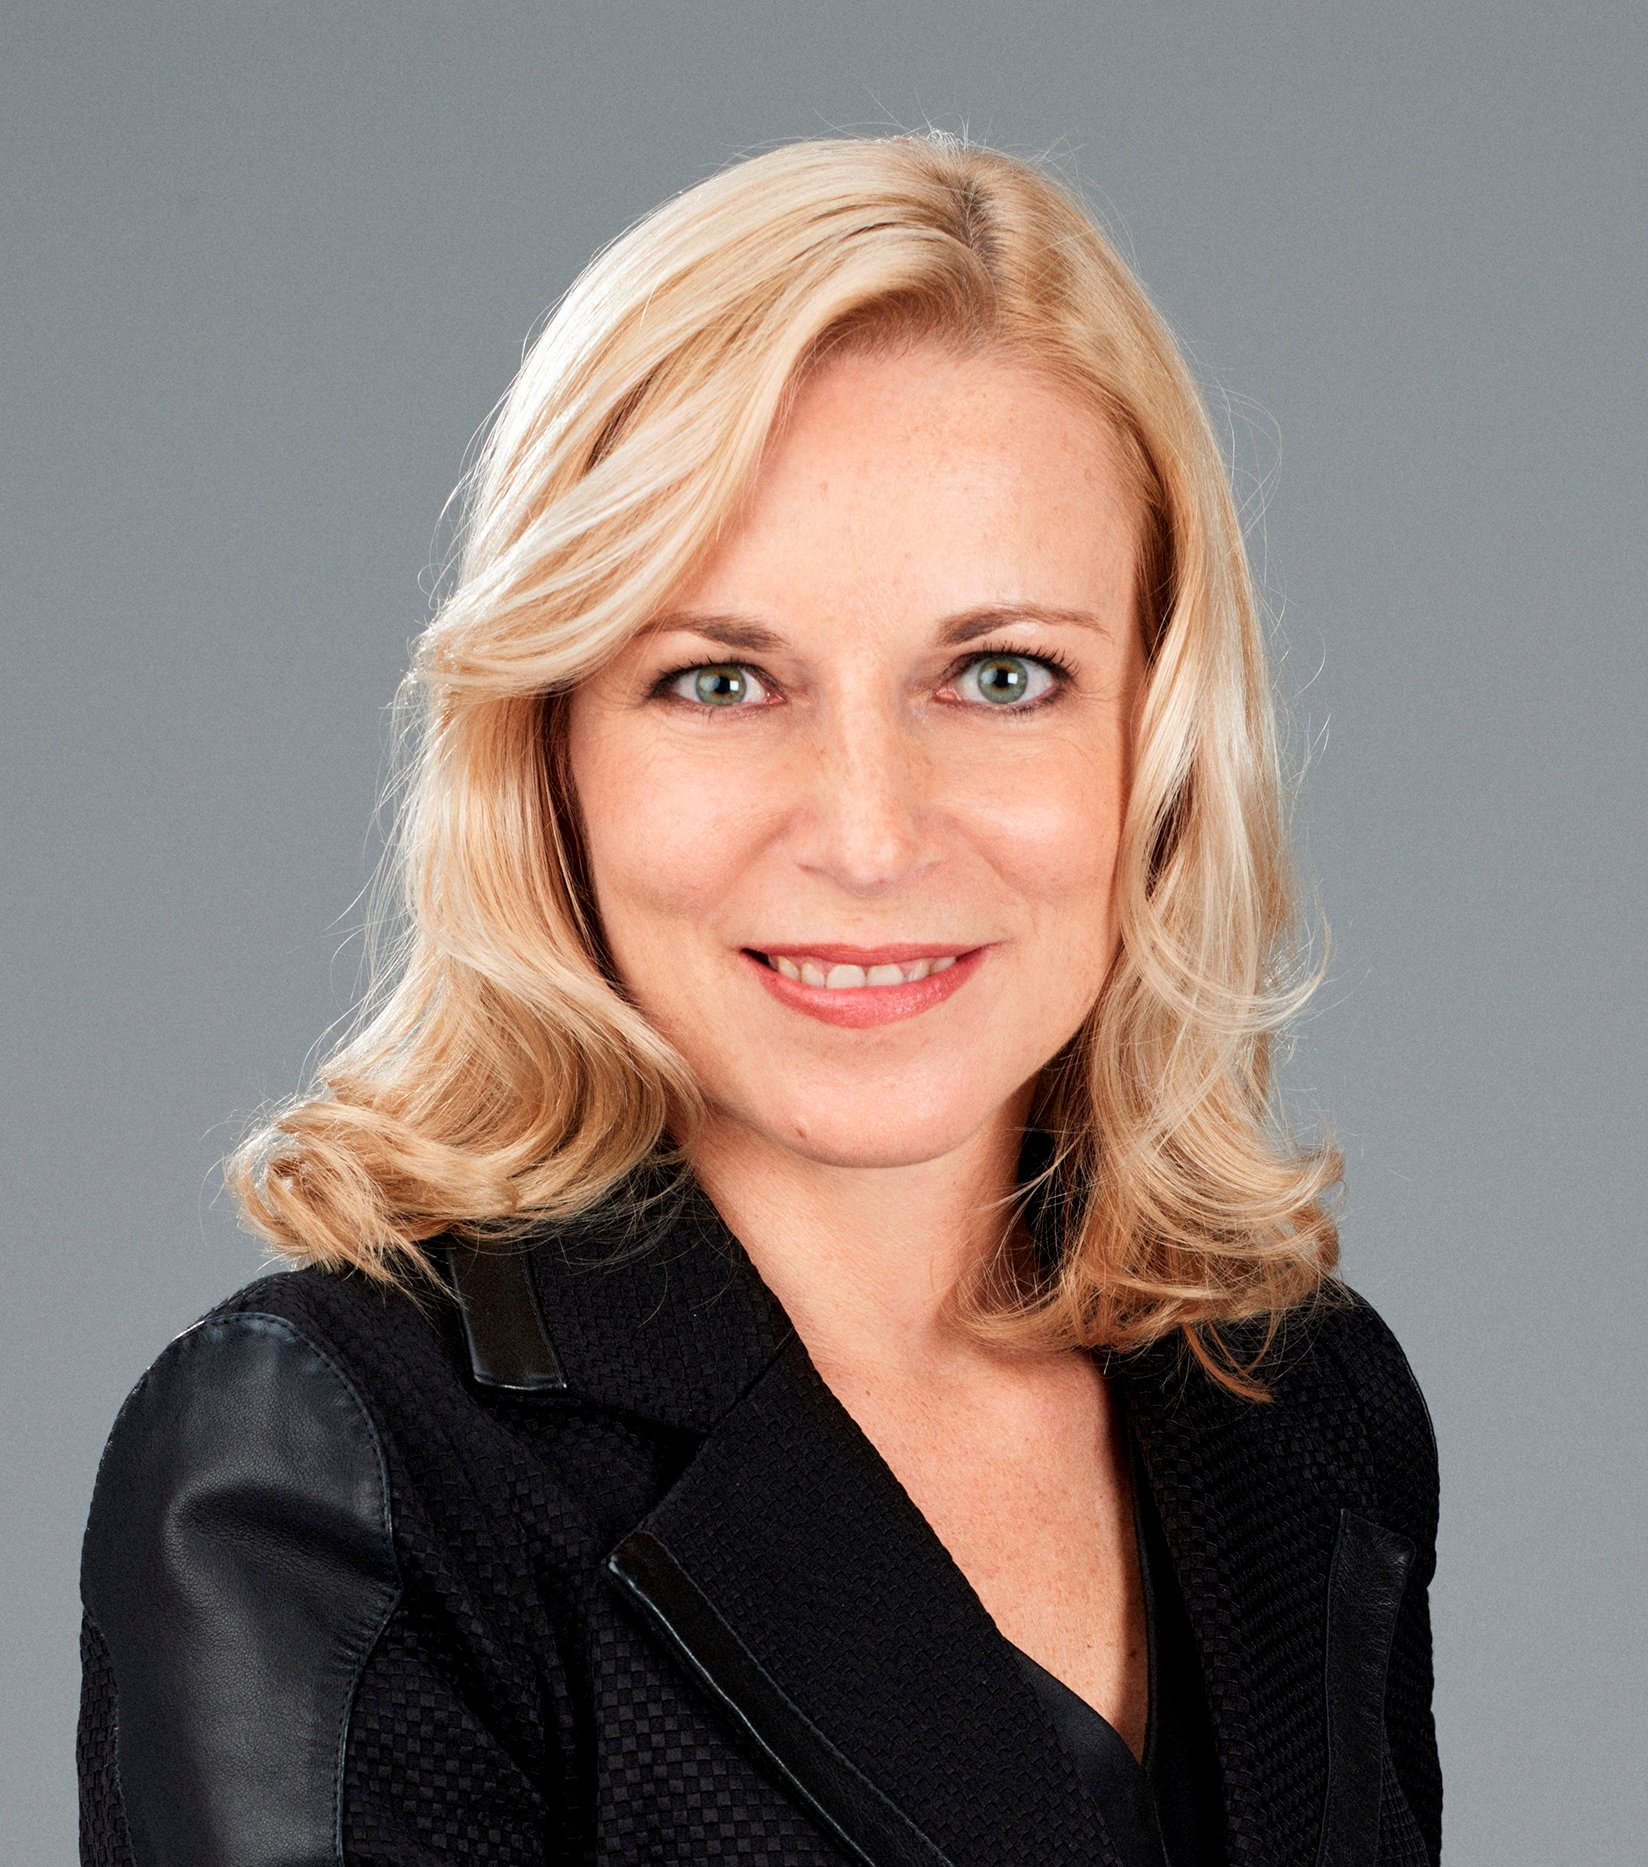 Coty appointed Sylvie Moreau, current Executive Vice President of Wella, the Salon Division of P&G, as the President of its future Coty Professional Beauty Division